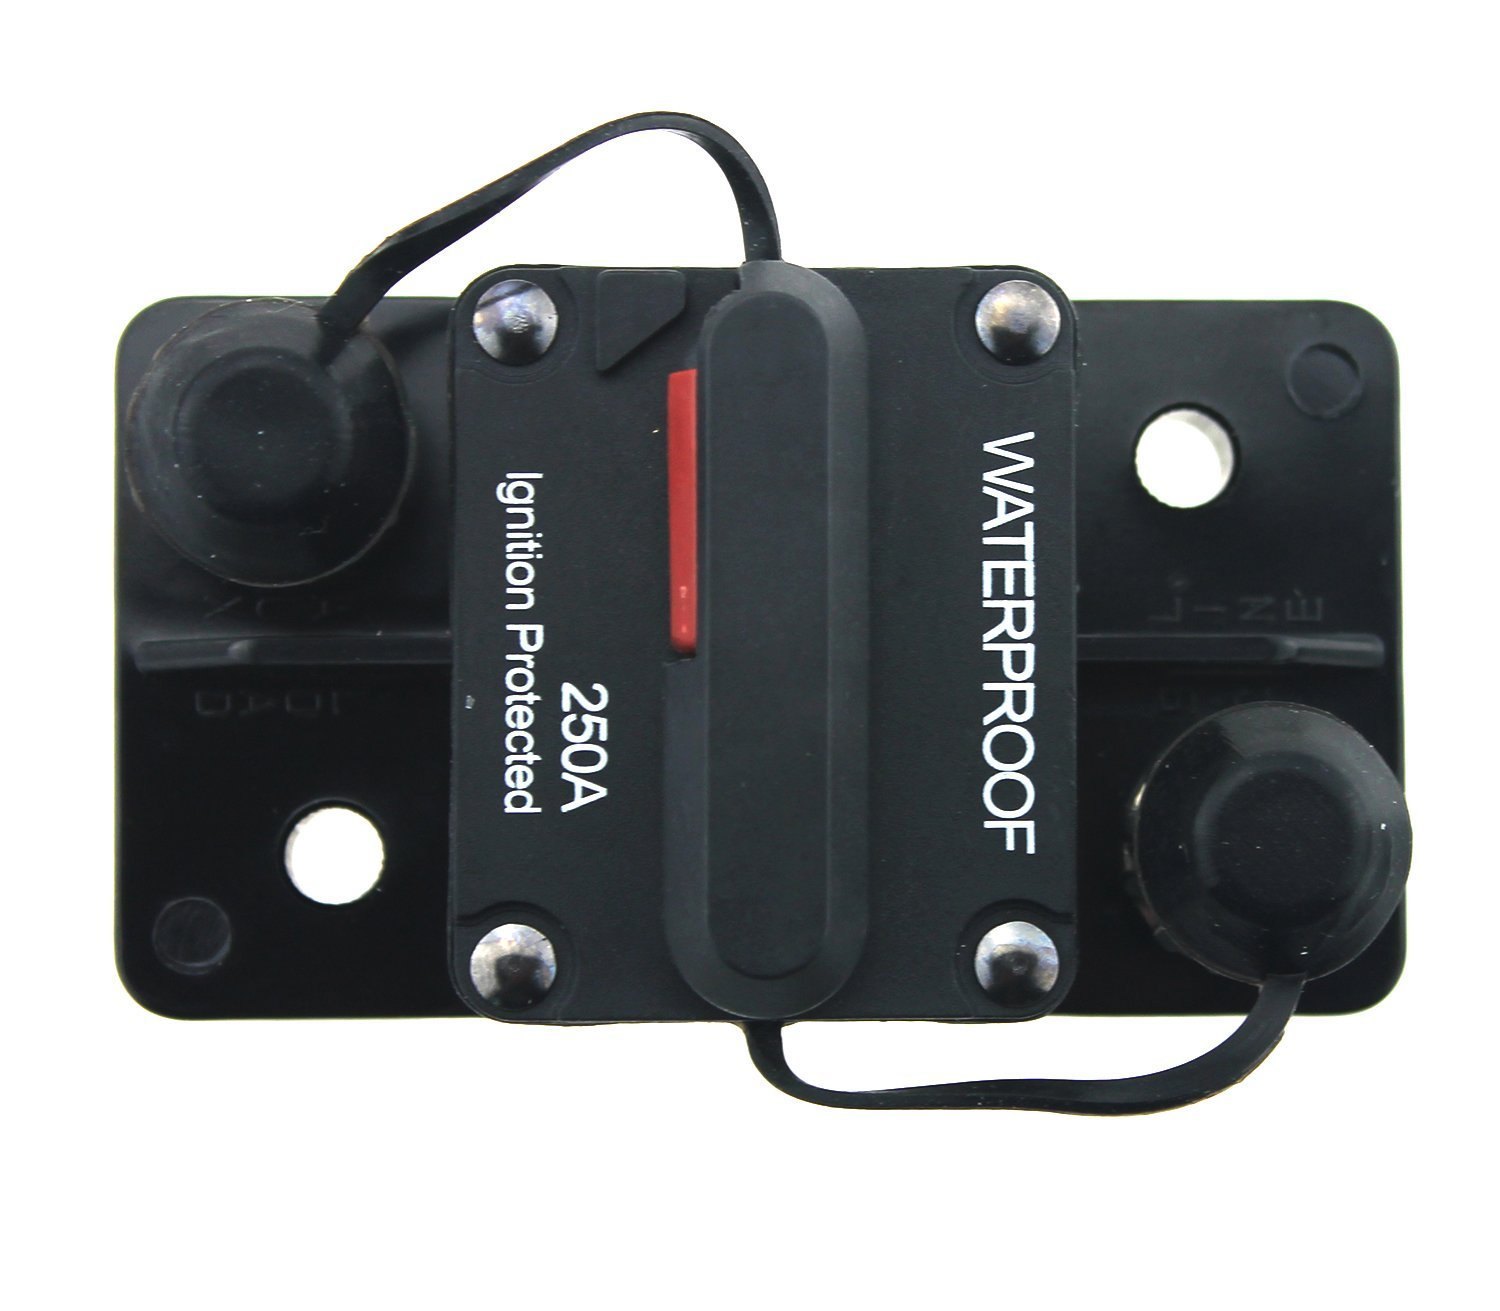 Photo-Top 180A-250A Hi-Amp Circuit Breaker T3+Switch with Manual Reset Water Proof